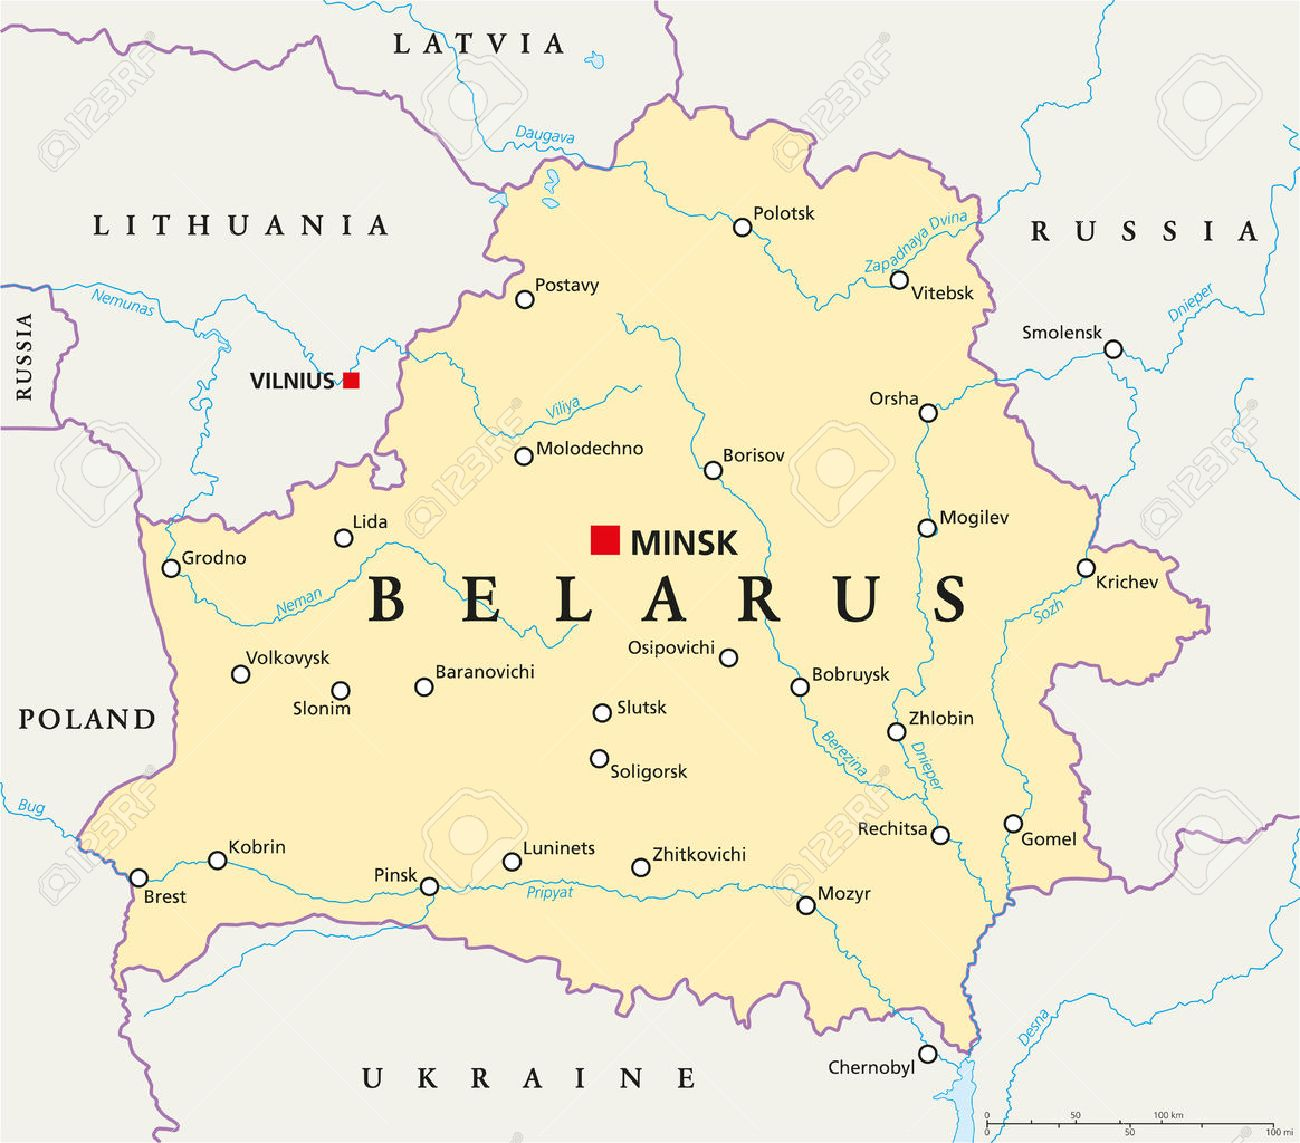 Belarus Political Map With Capital Minsk National Borders - minsk map